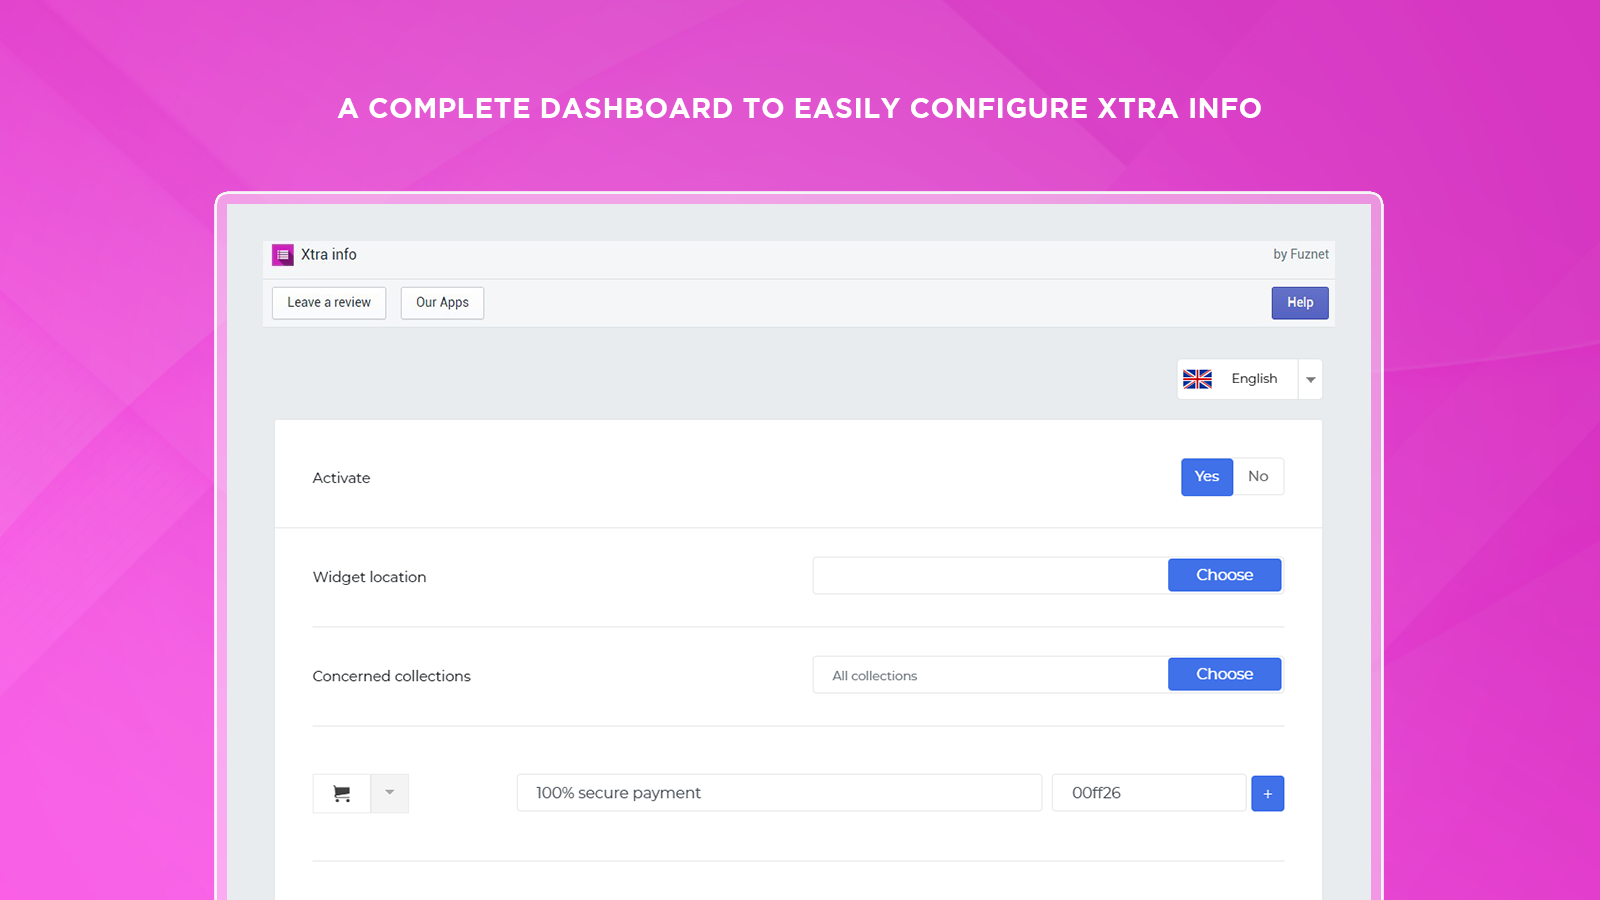 A complete dashboard to easily configure Xtra info